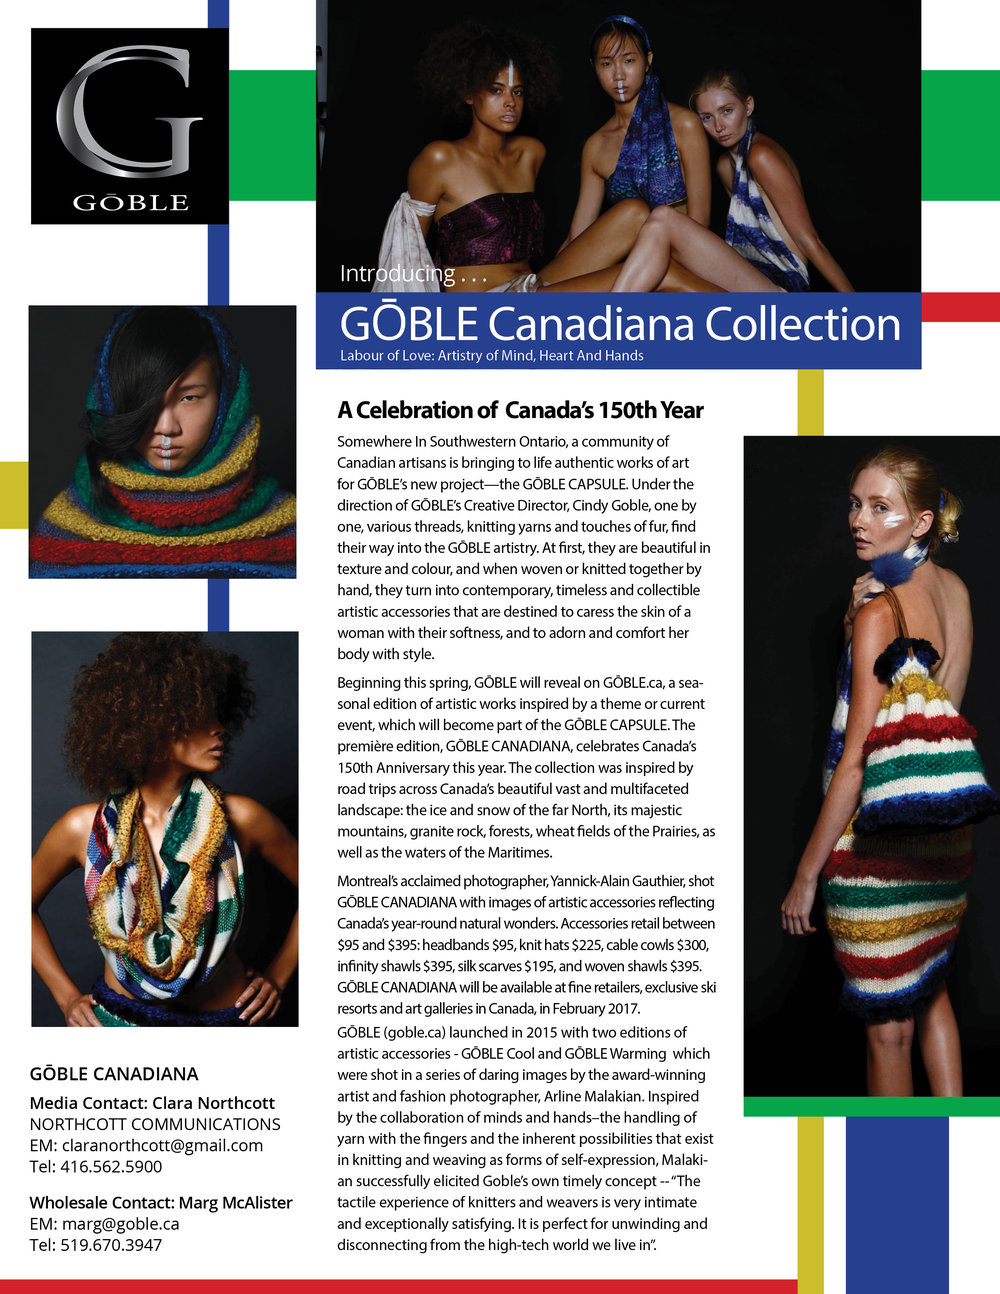 Goble Canadiana Collection.jpg